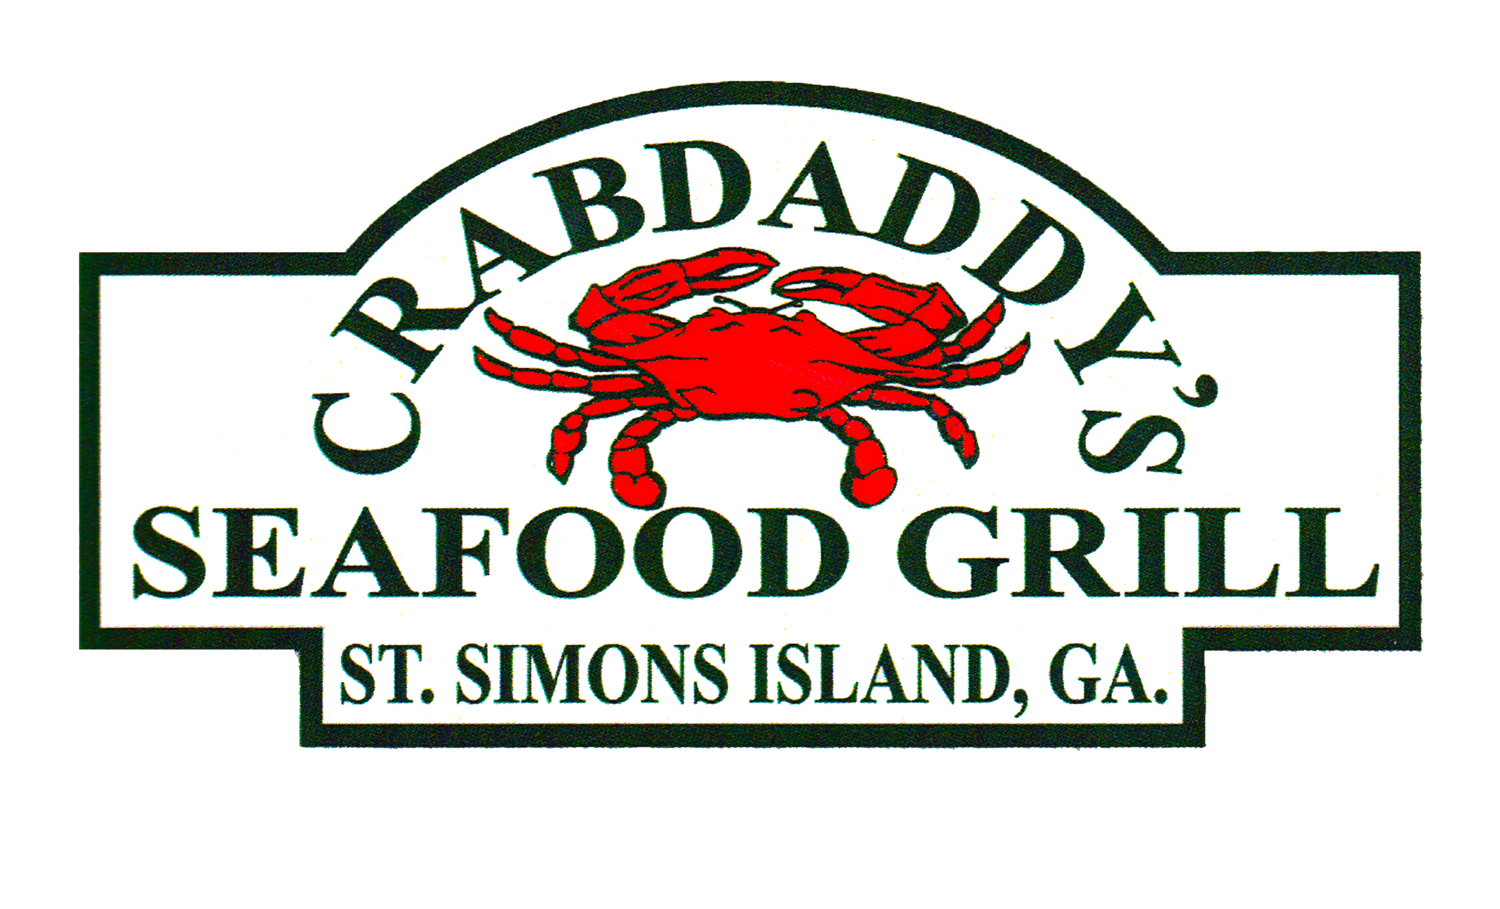 Crabdaddy's Seafood Grill